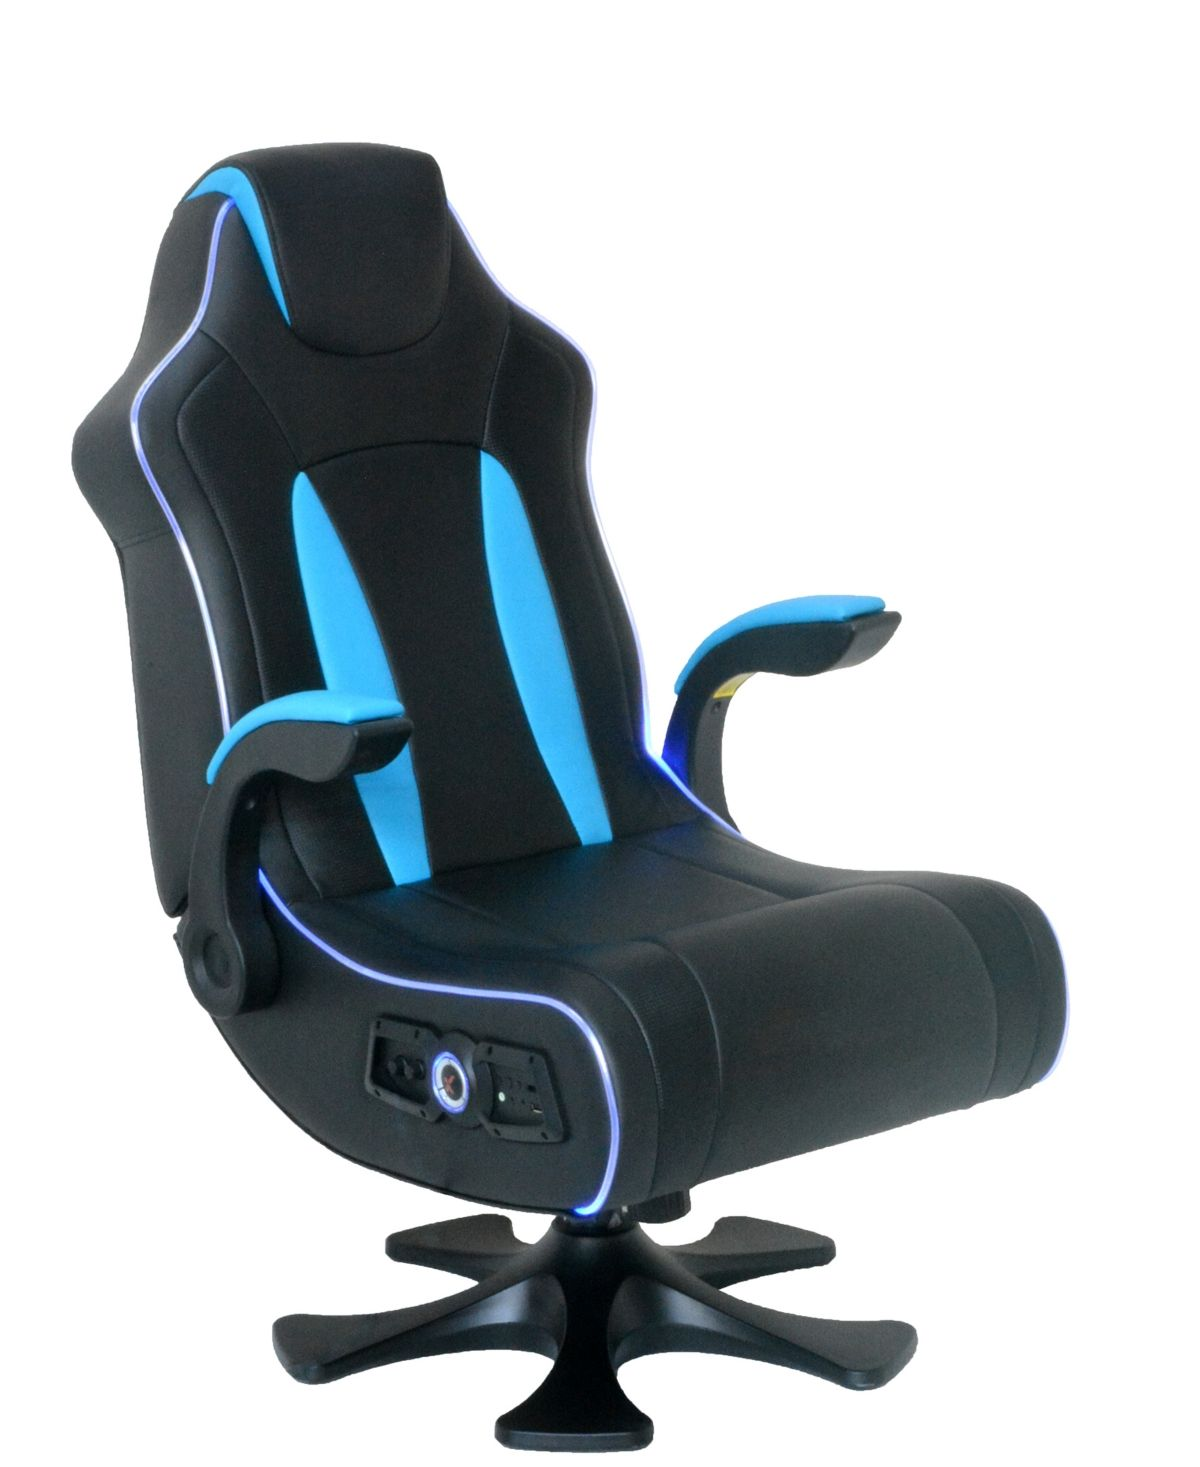 X Rocker Cxr3 Dual Audio Gaming Chair With Speakers Reviews Furniture Macy S In 2020 Gaming Chair Ergonomic Chair Custom Shoes Diy